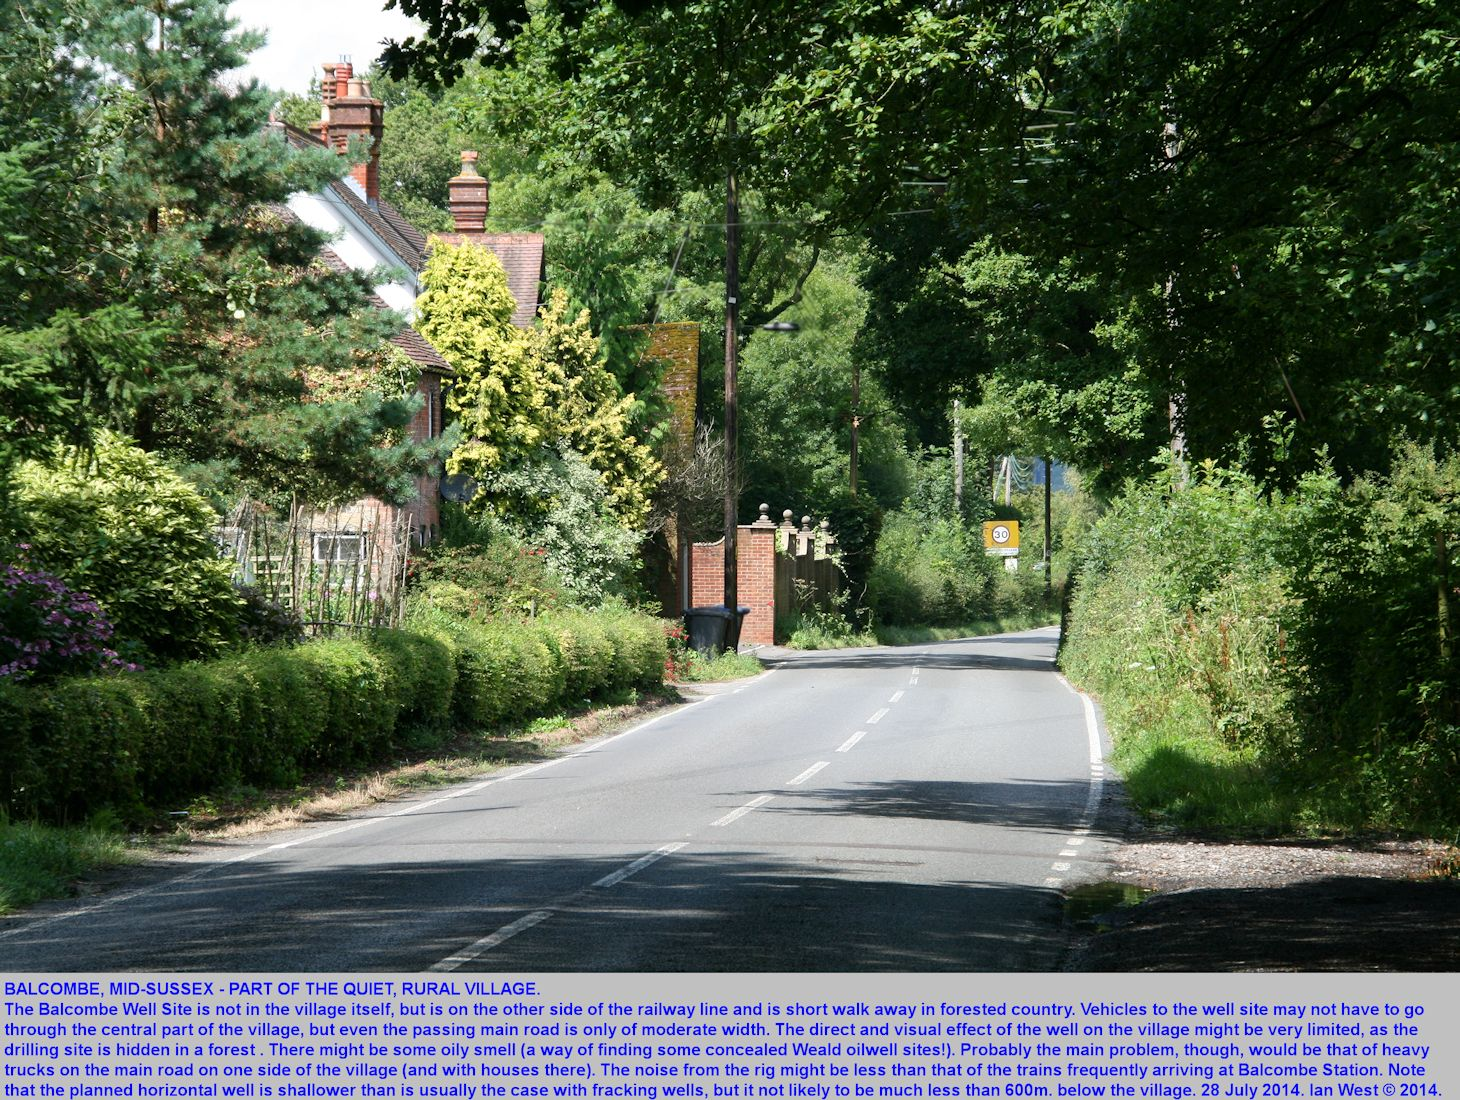 Balcombe, Sussex, the well-known well-site locality, part of the village environment shown here, a quiet village road